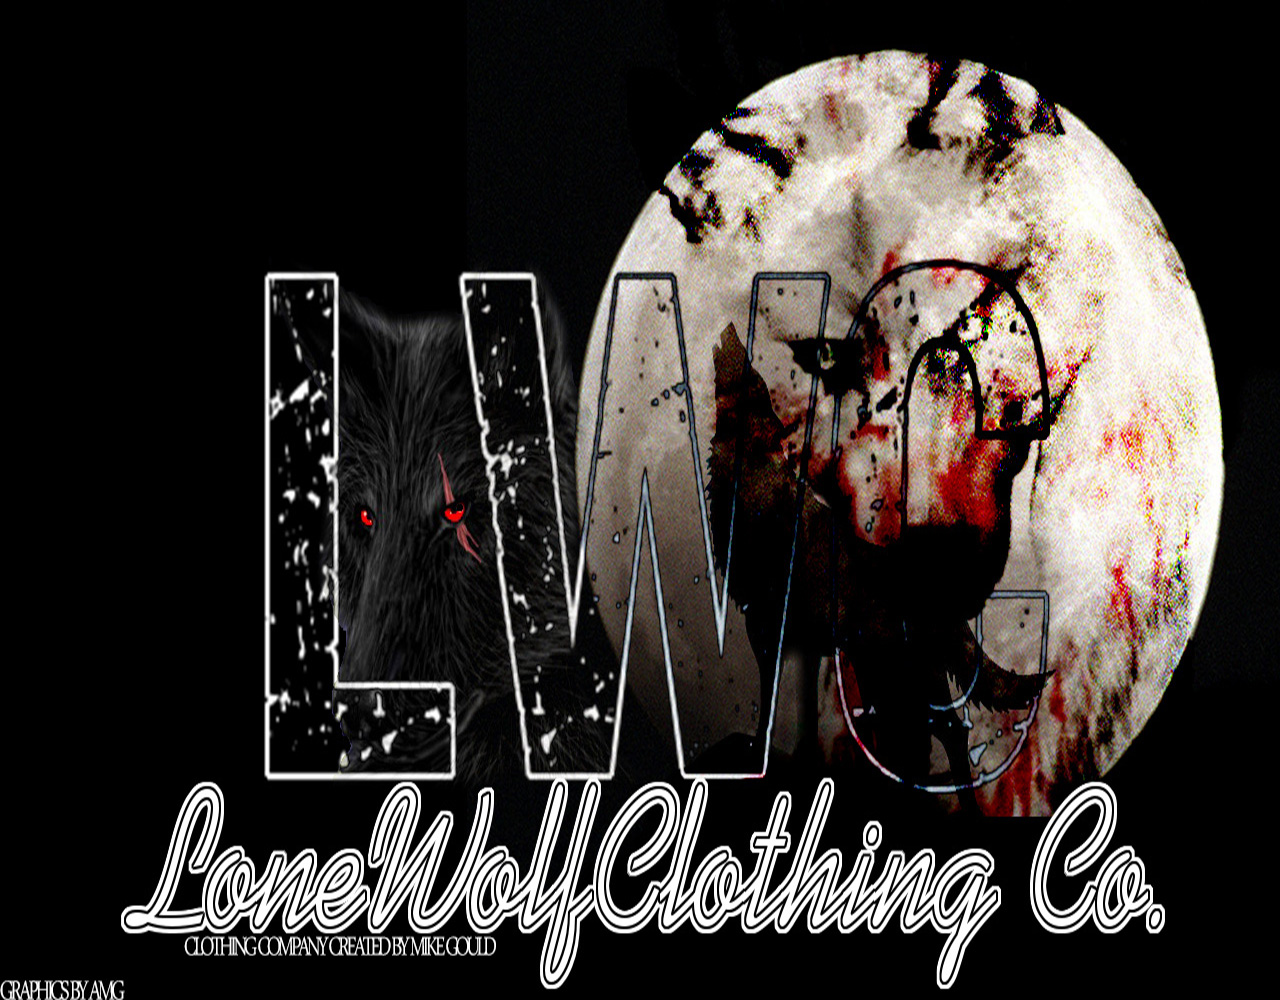 Lone Wolf Clothing Co.